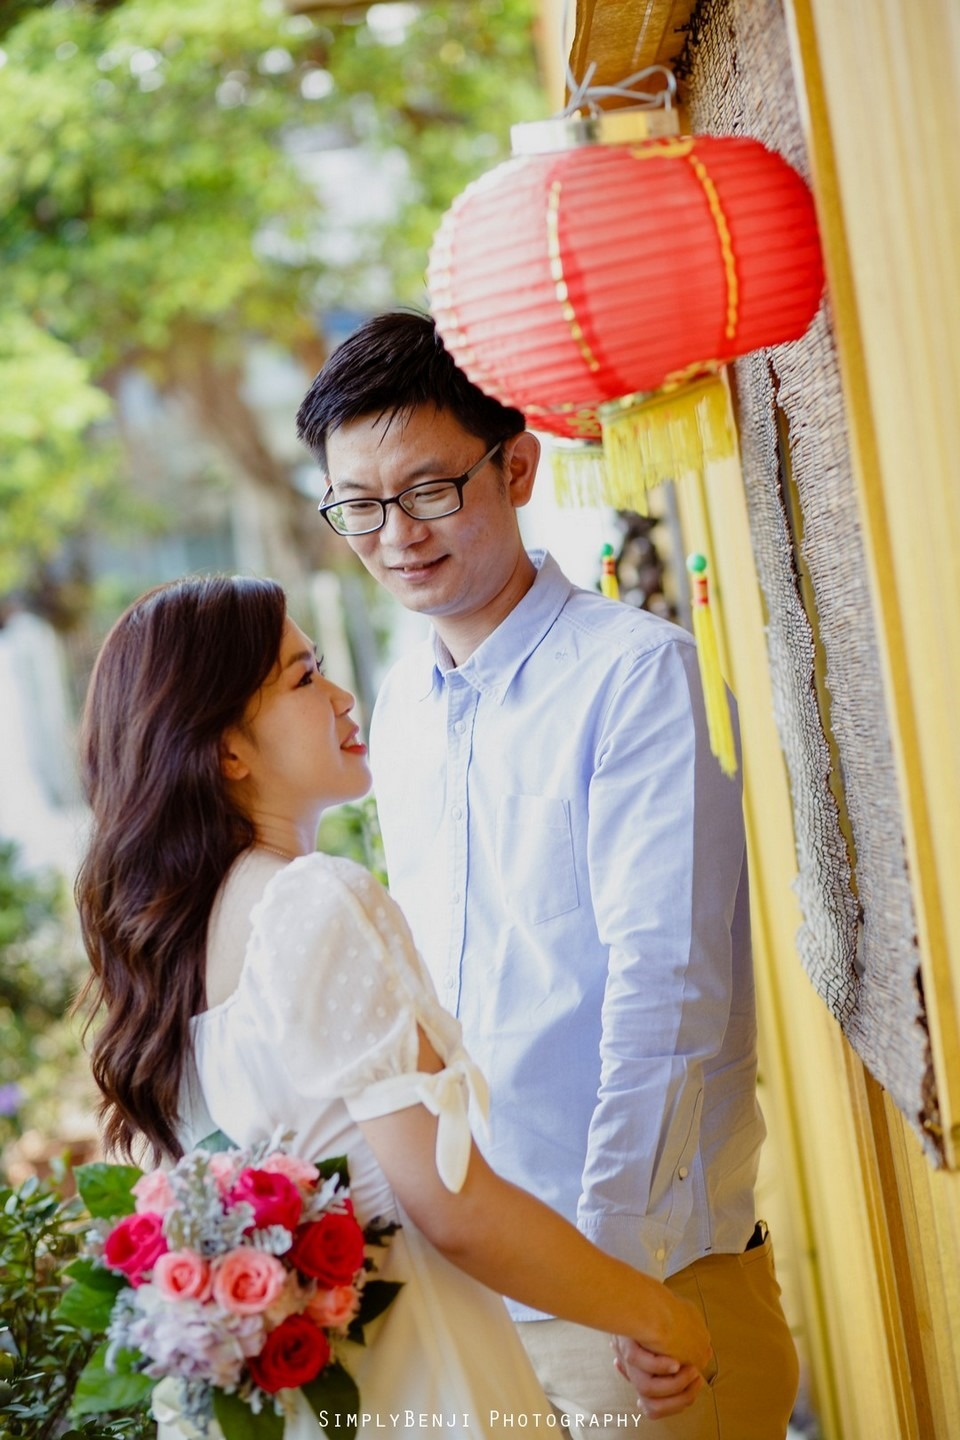 ROM Thean Hou Temple Engagement Portrait _KL Wedding Photographer Malaysia_003